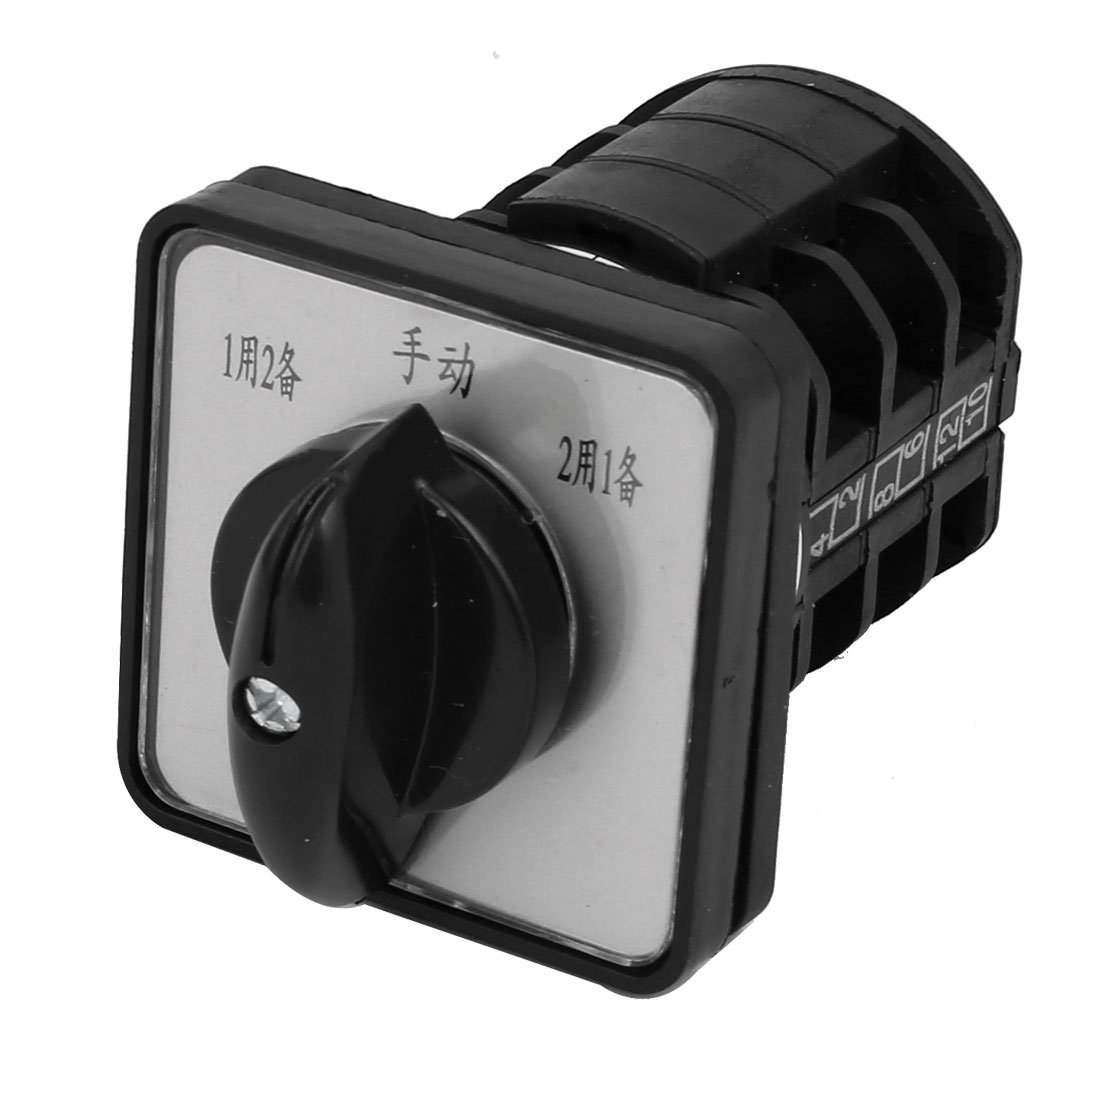 uxcell AC 440V 240V 10A Rotary Cam Universal Combination Switch